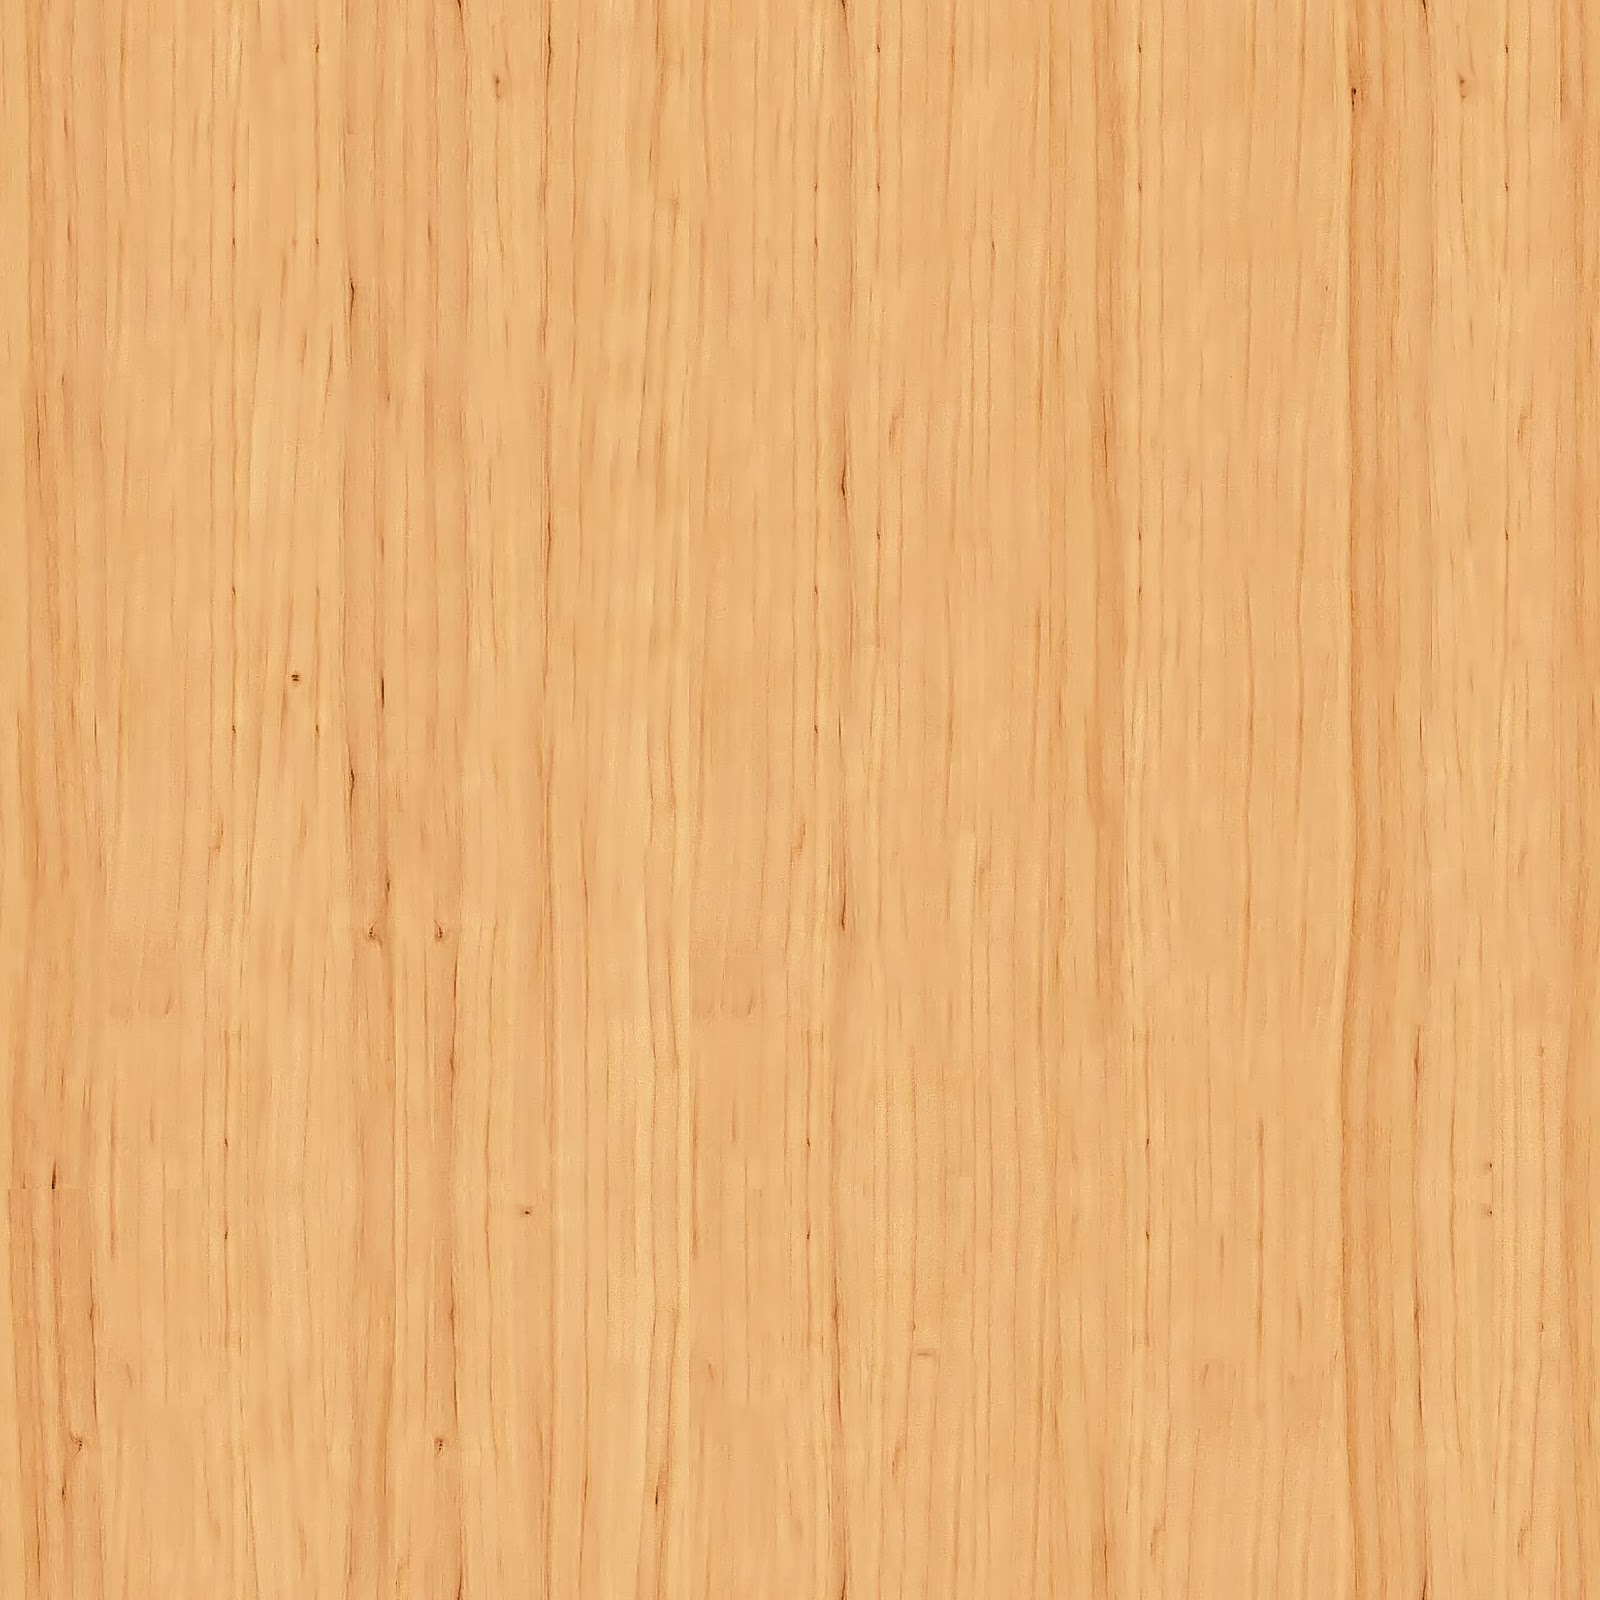 Tileable fine wood texture maps texturise free for Wood floor texture seamless